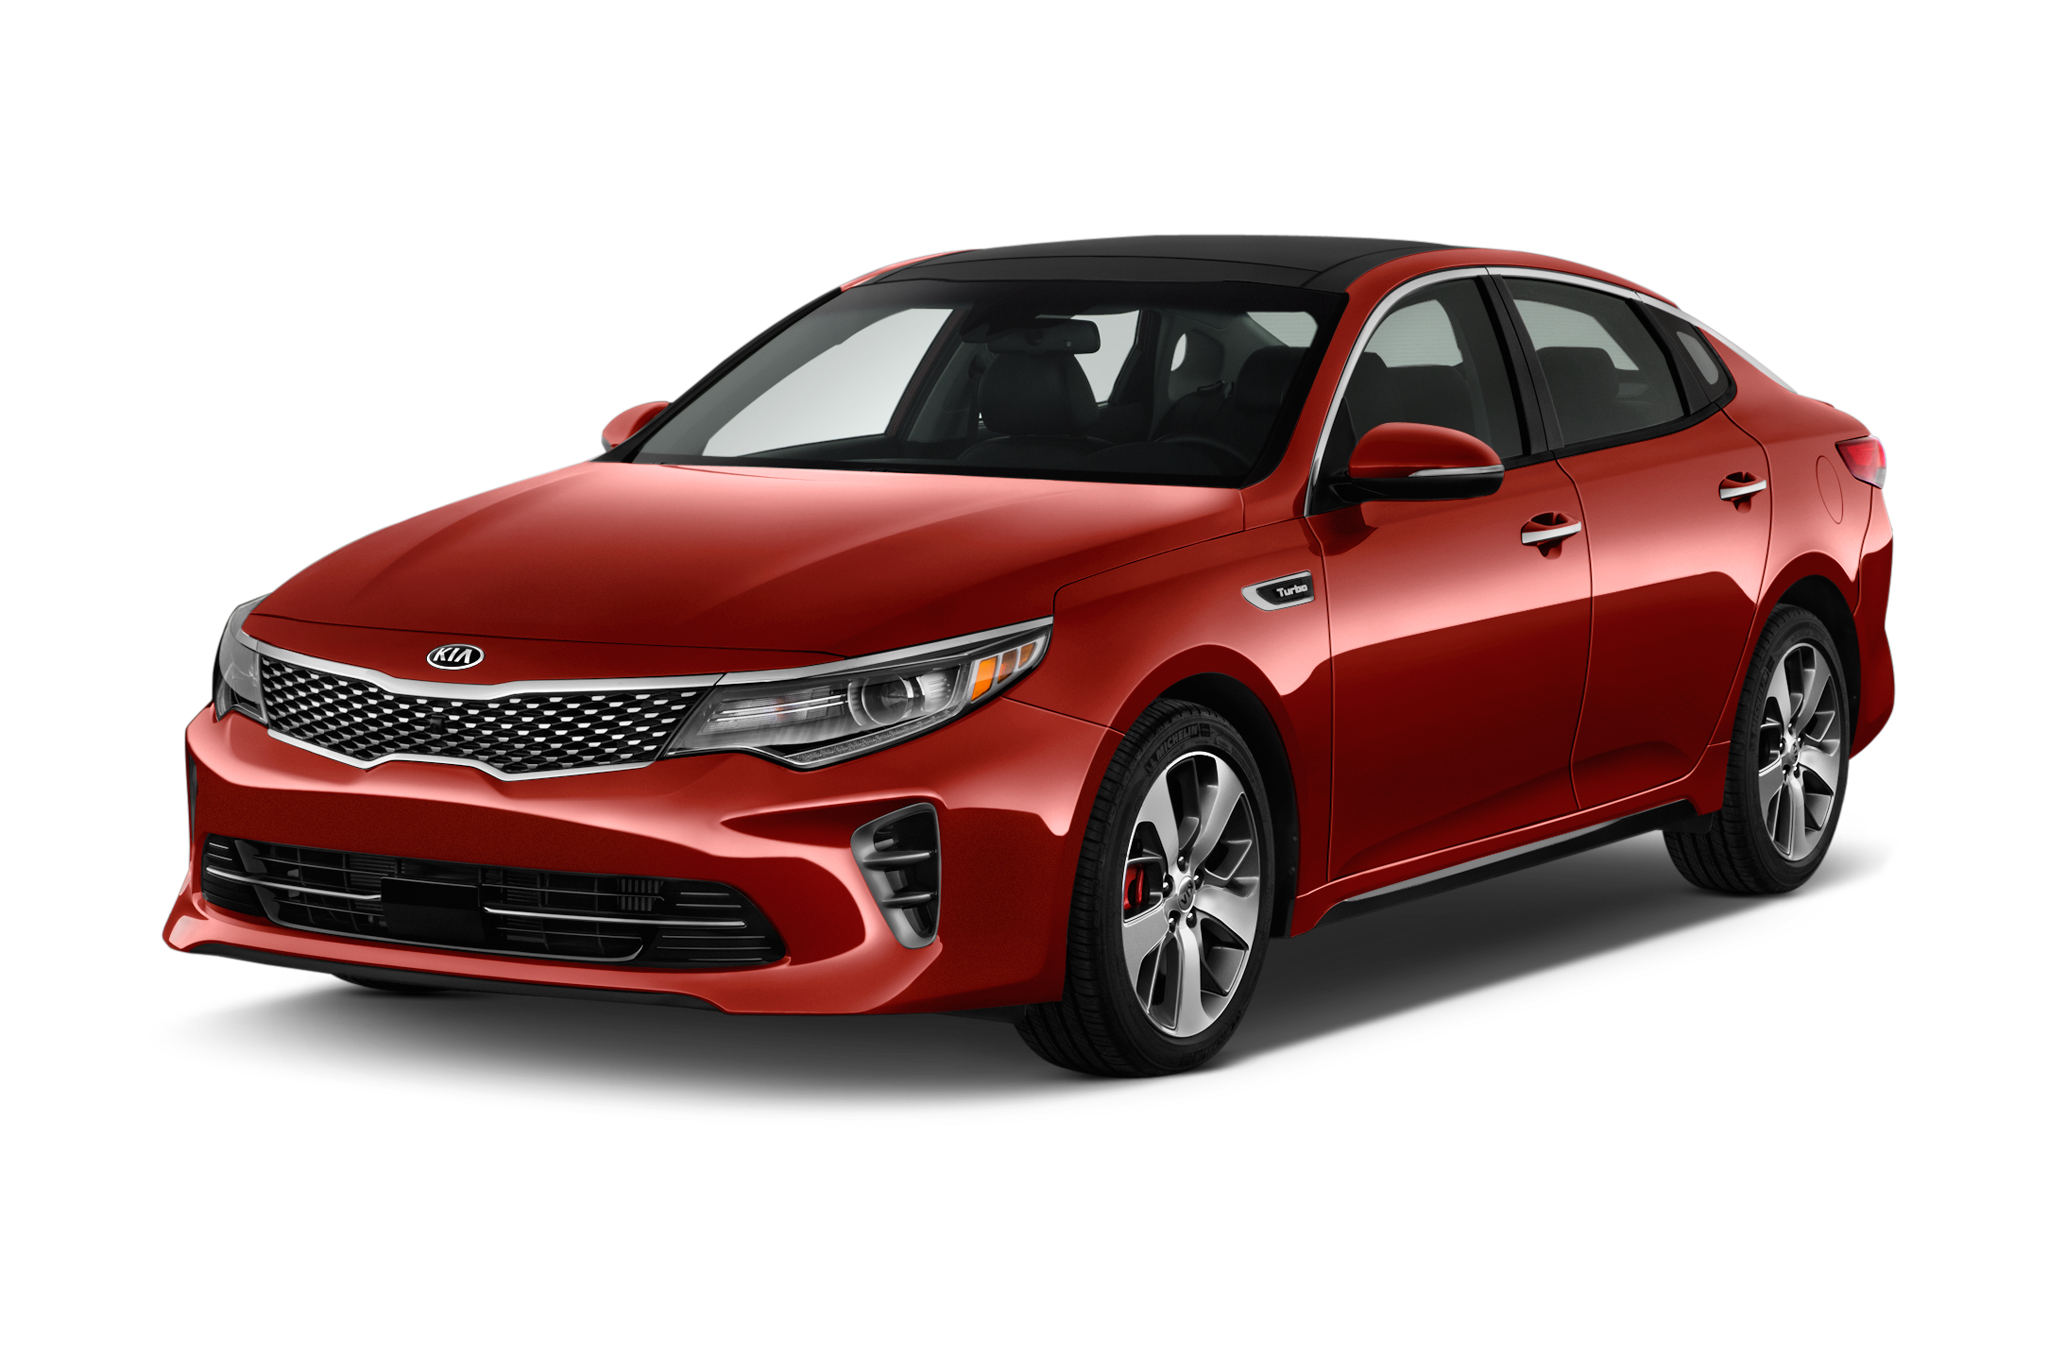 2016 kia optima sx at turbo reviews msn autos. Black Bedroom Furniture Sets. Home Design Ideas